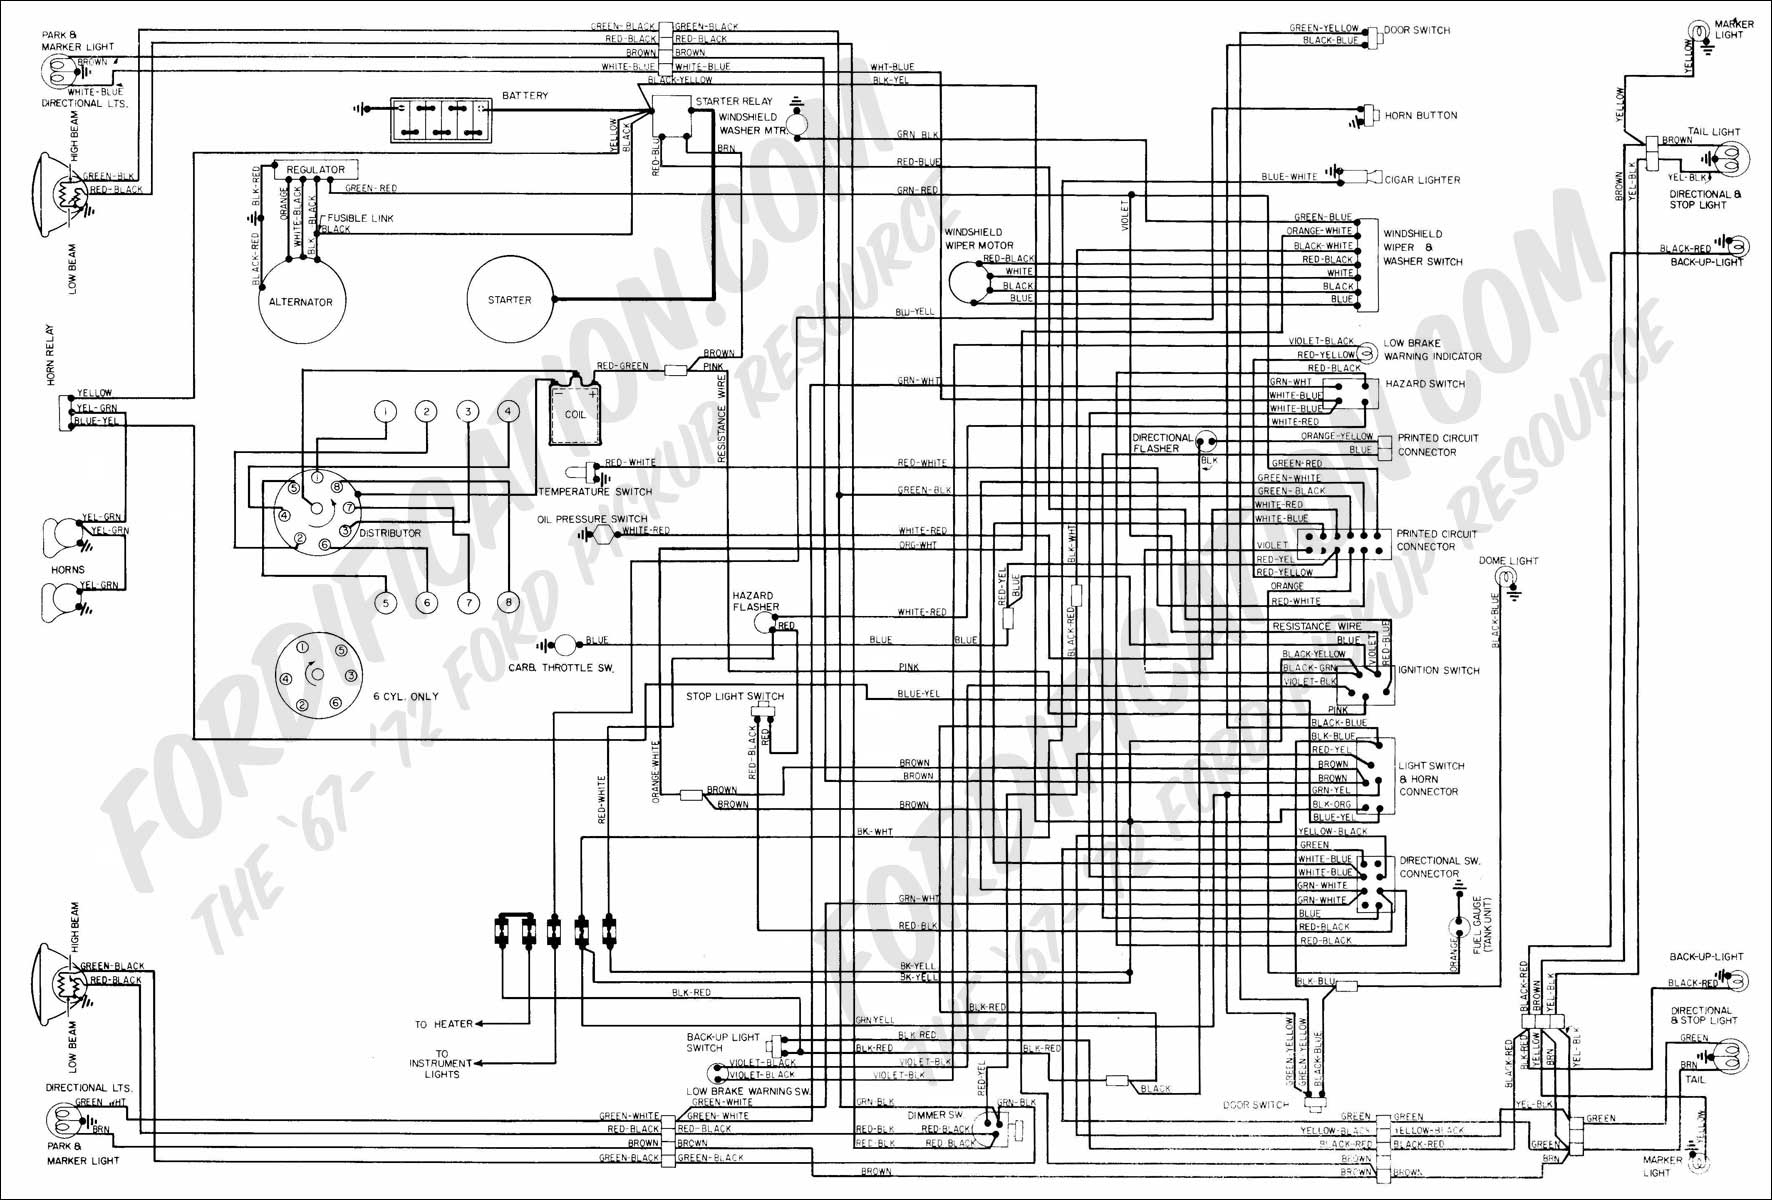 2005 Ford F150 Wiring Harness - Wiring Diagram Detailed - Ford F150 Wiring Harness Diagram